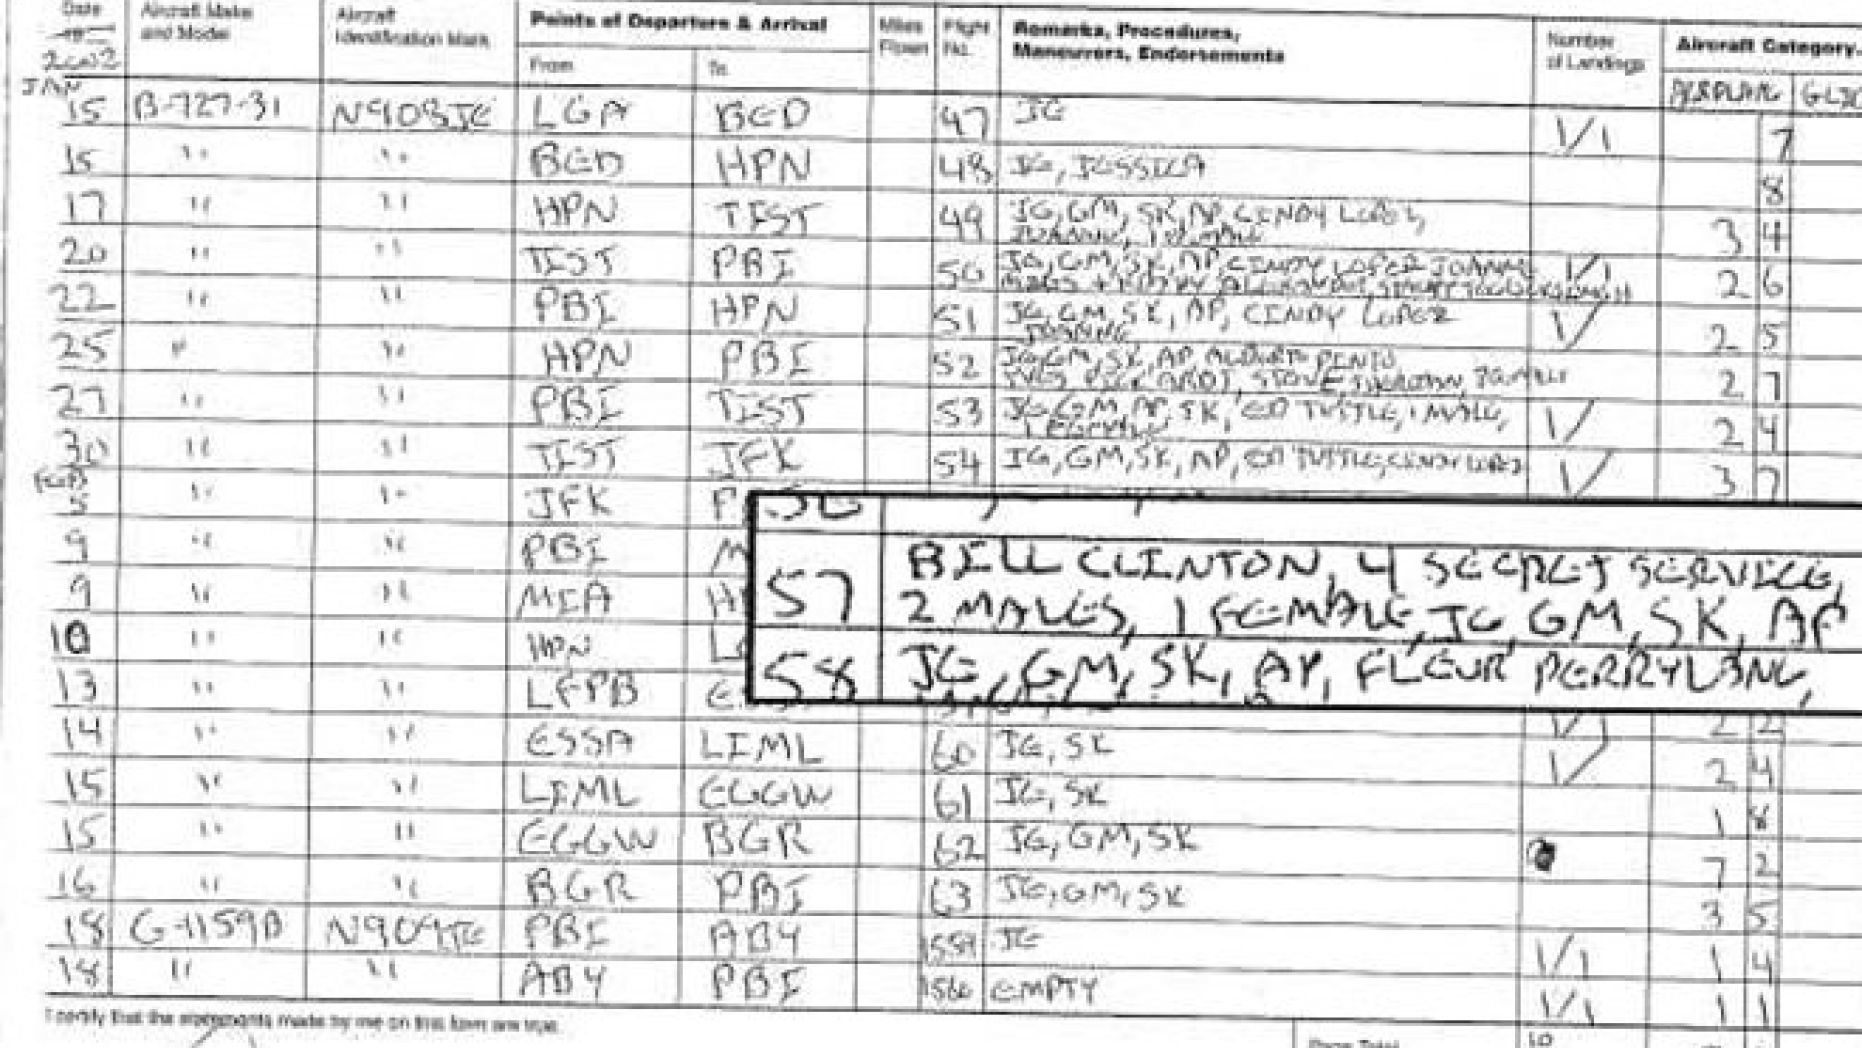 The flight logs are required to be filed with the Federal Aviation Administration.